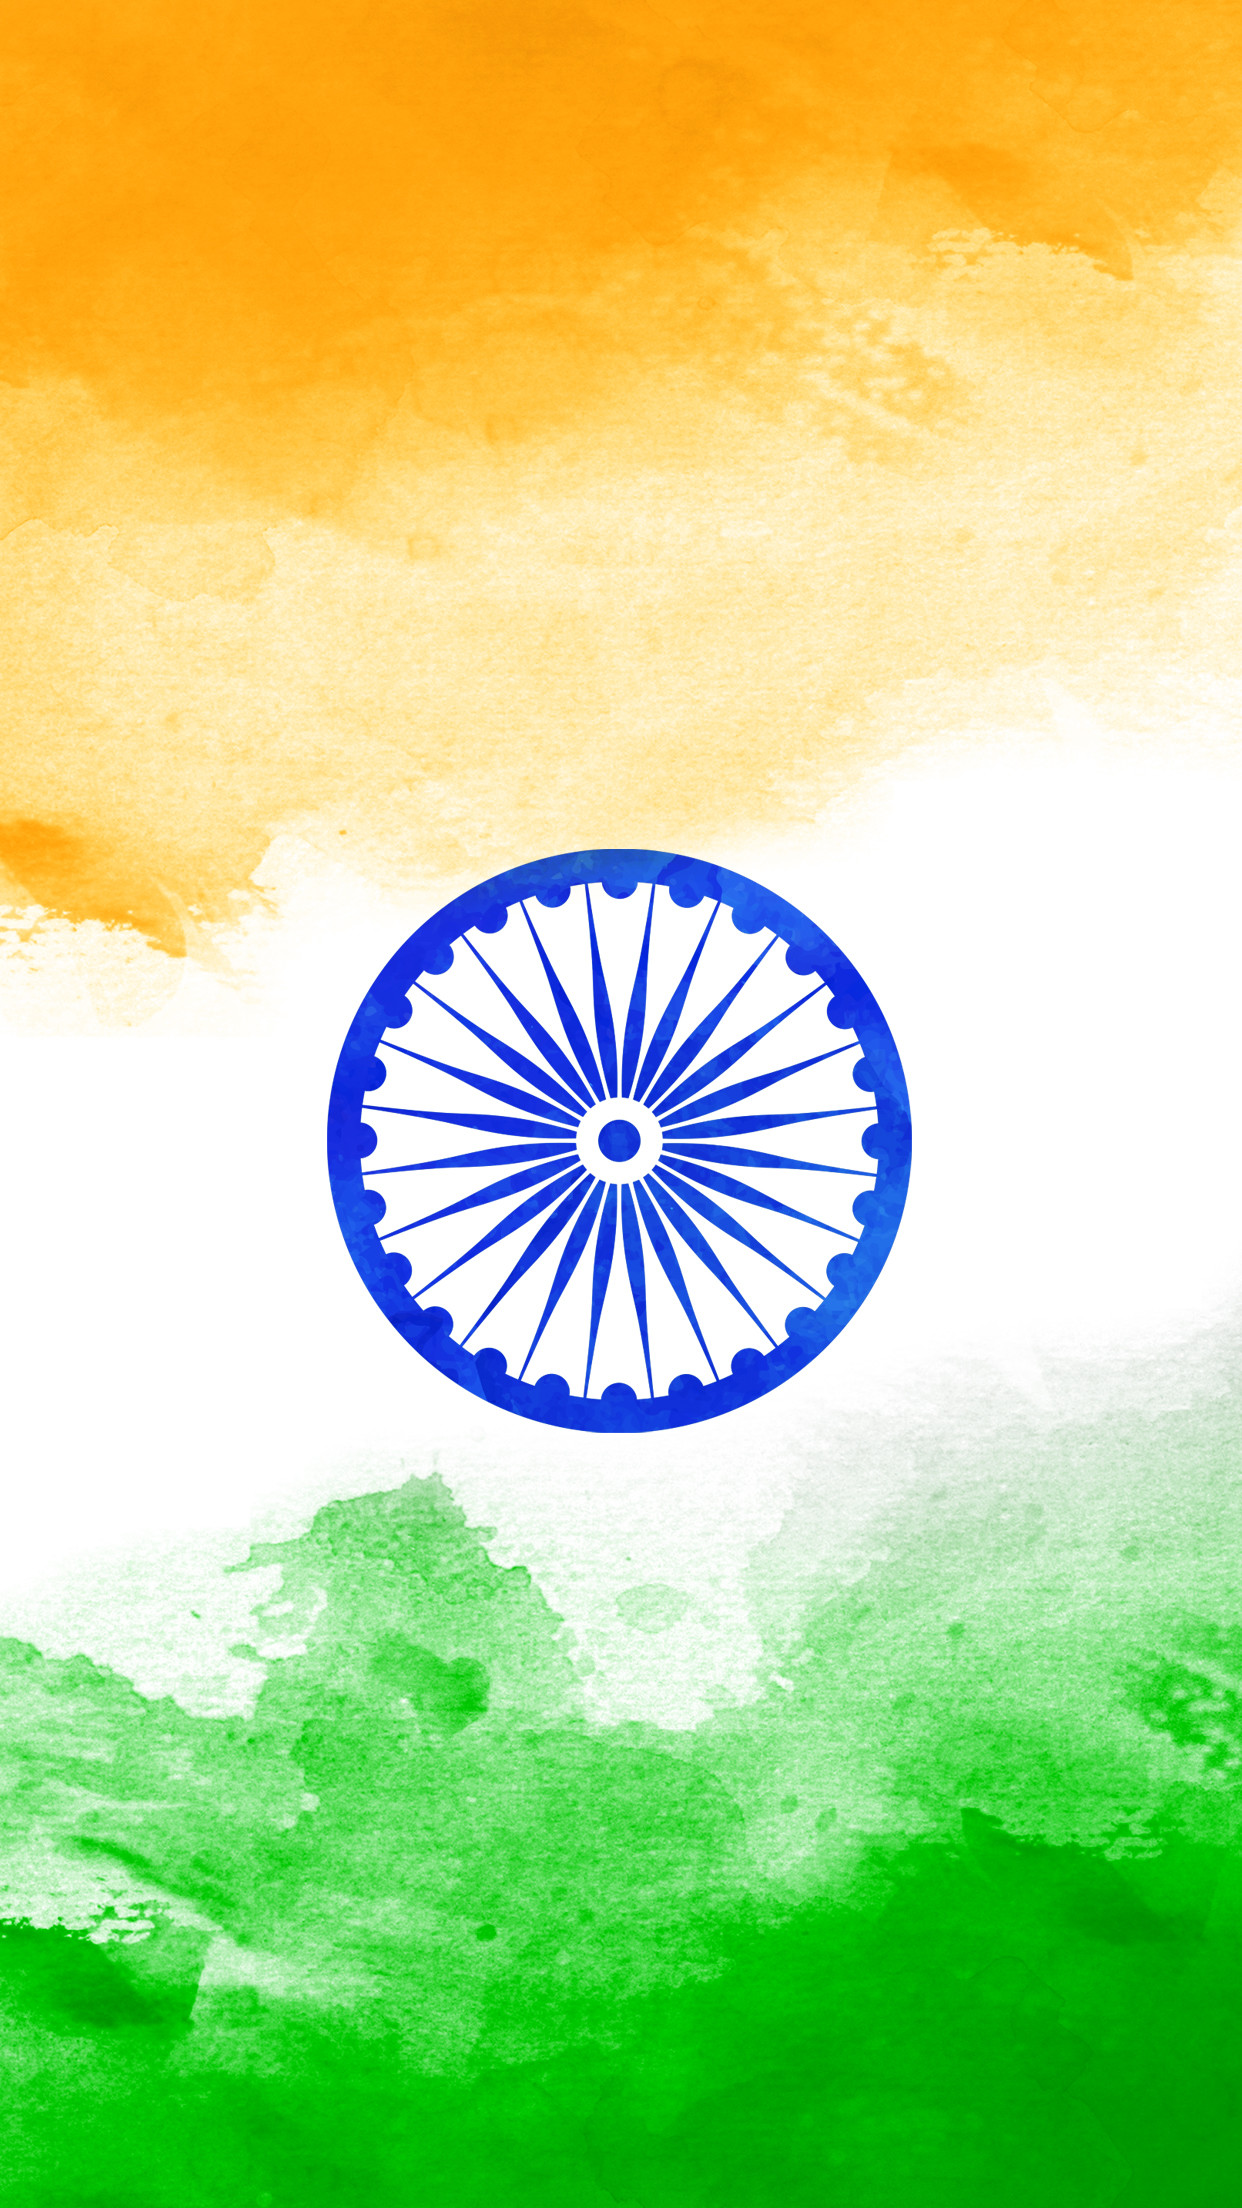 Indian flag wallpaper 2018 wallpapertag - Indian flag hd wallpaper for android ...